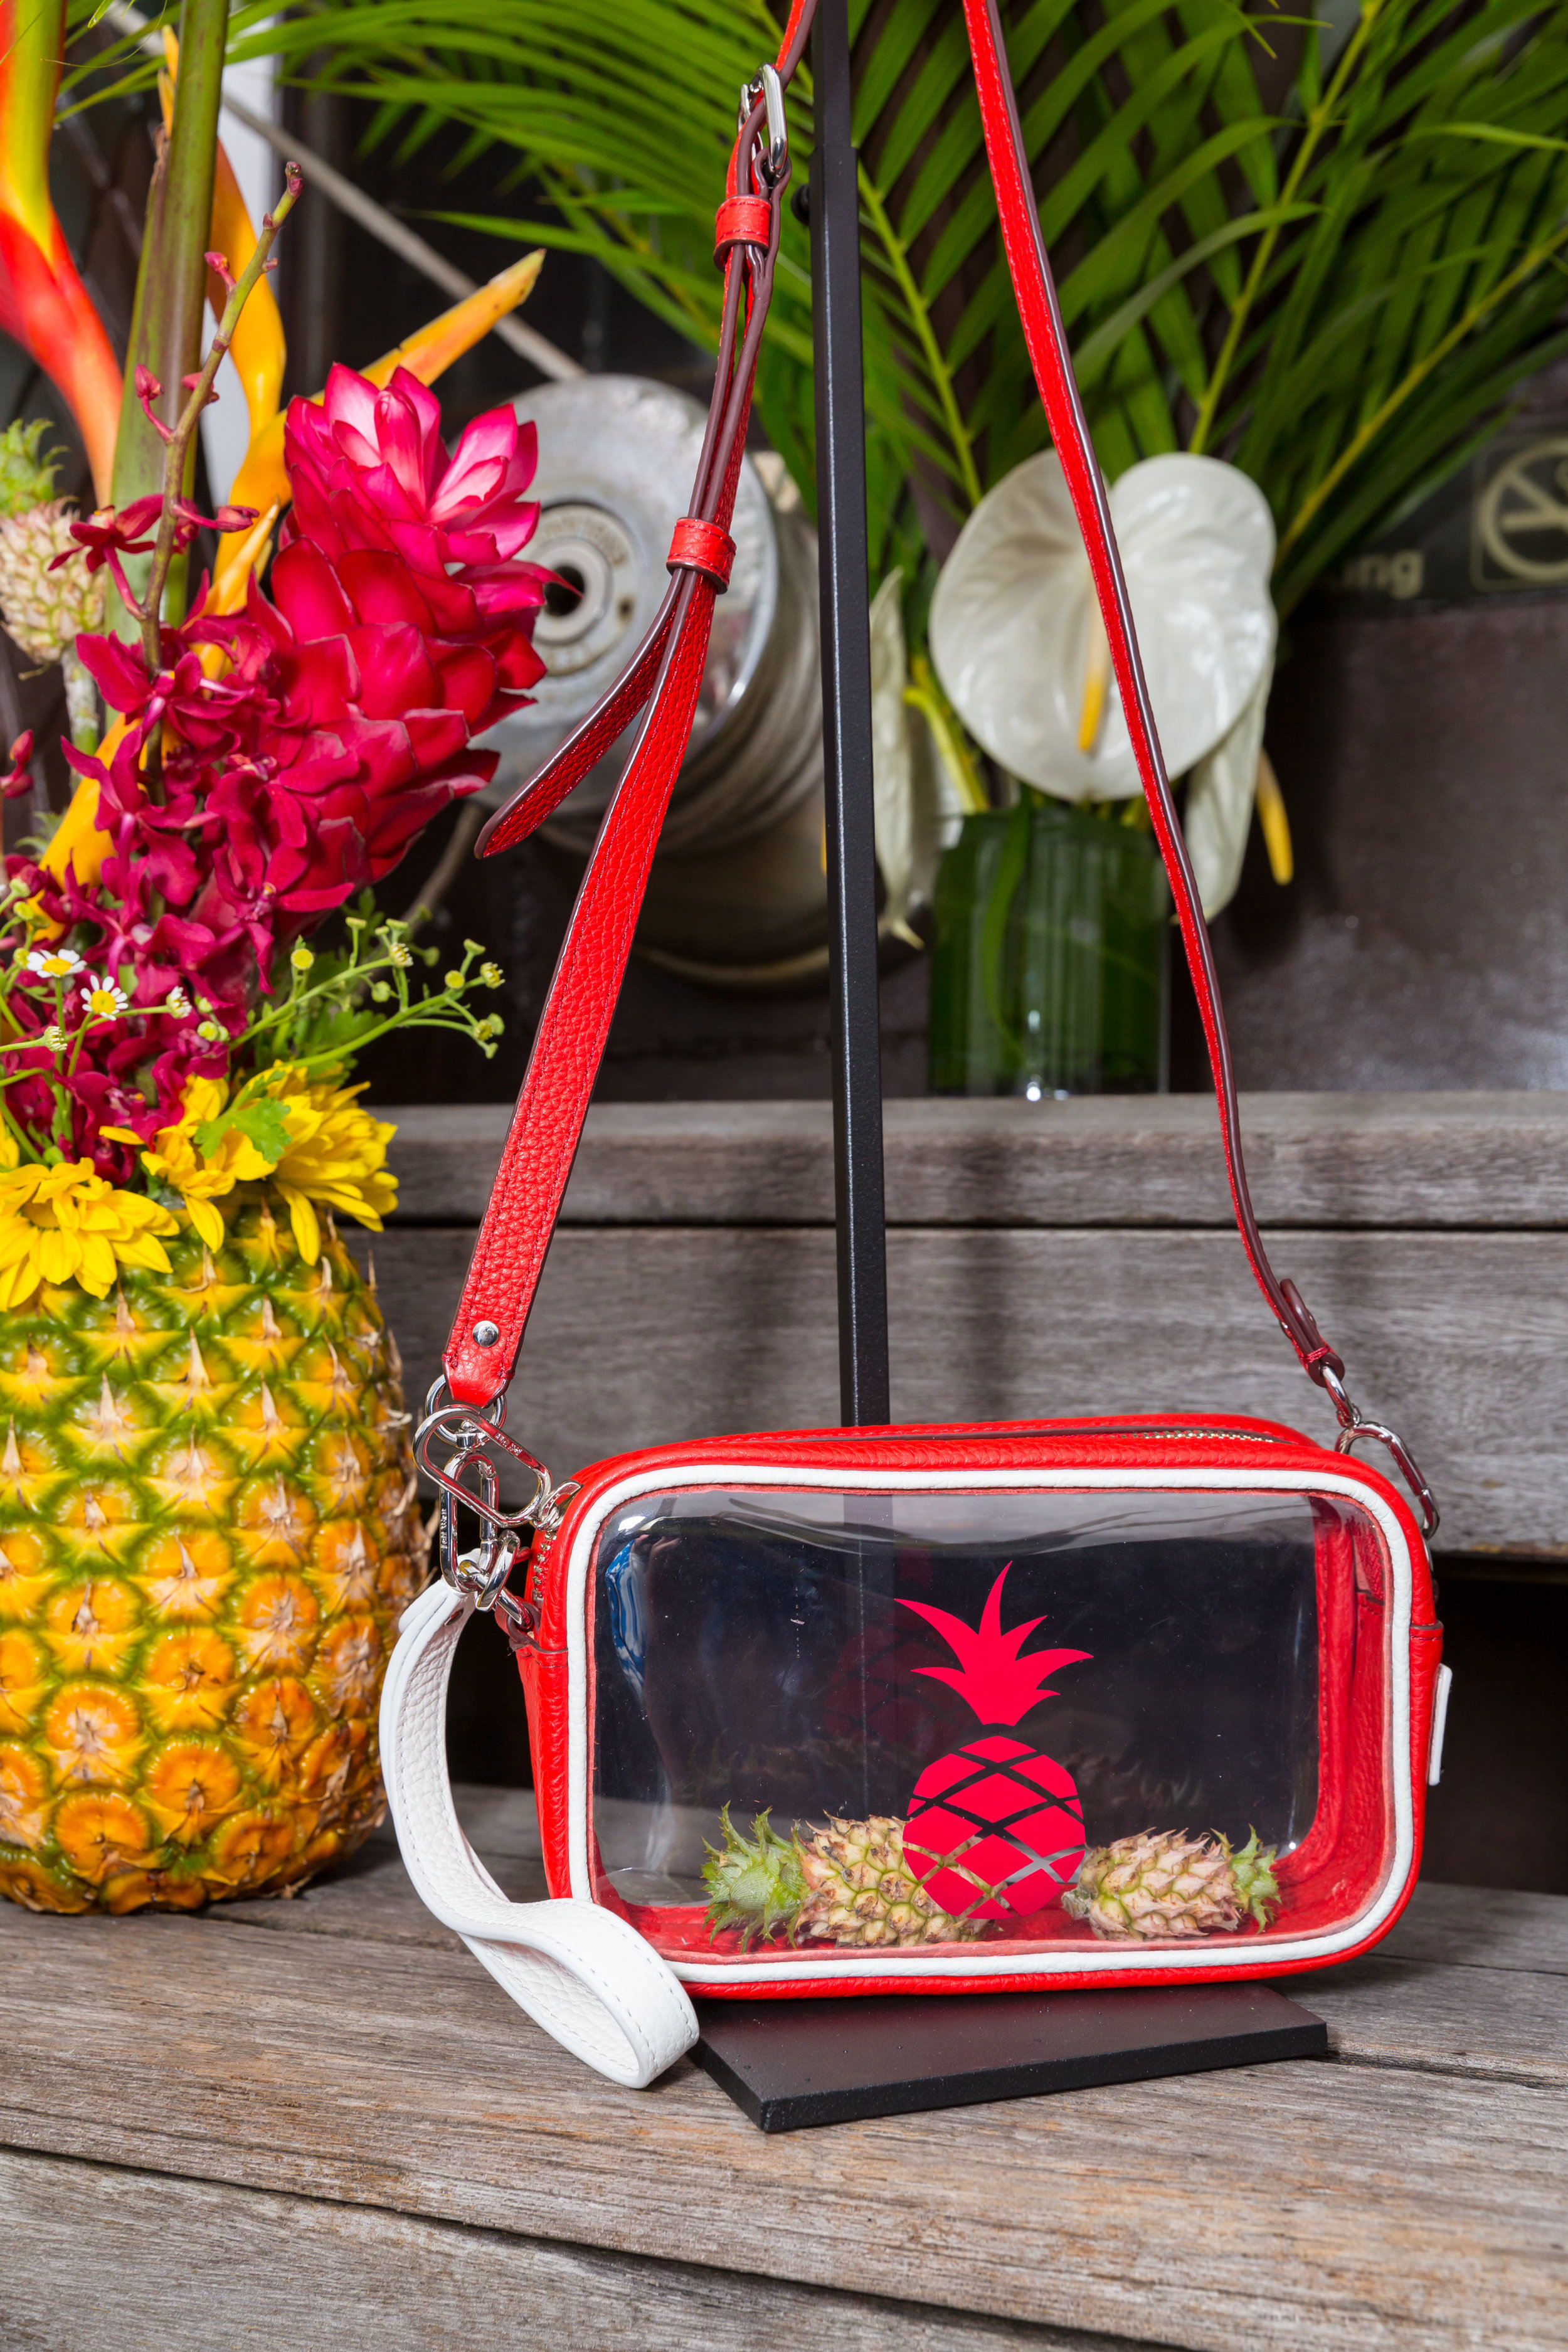 The clear cross-body bag with pineapple(s).